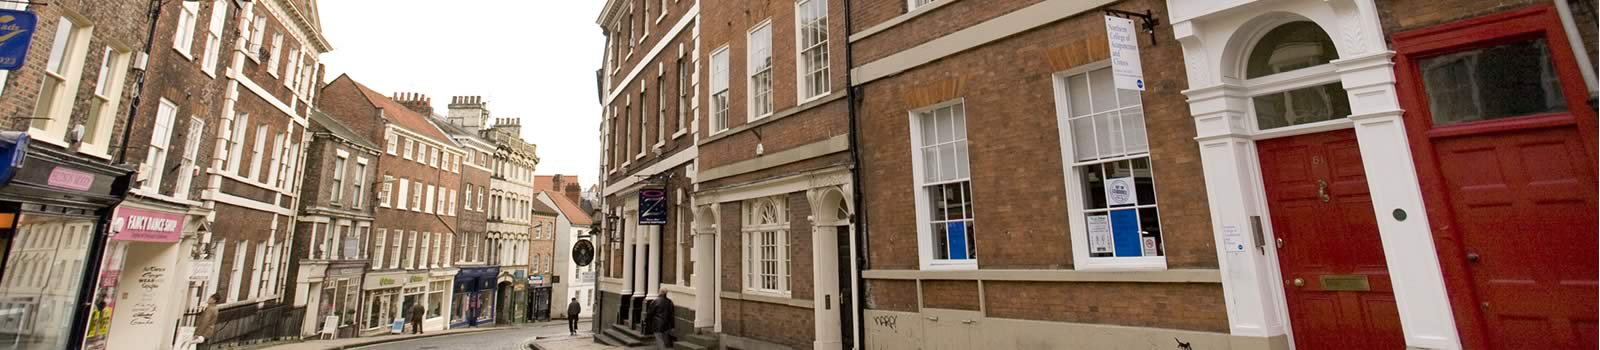 Study acupuncture, nutritional therapy and Chinese herbal medicine at the Northern College of Acupuncture, Micklegate, York